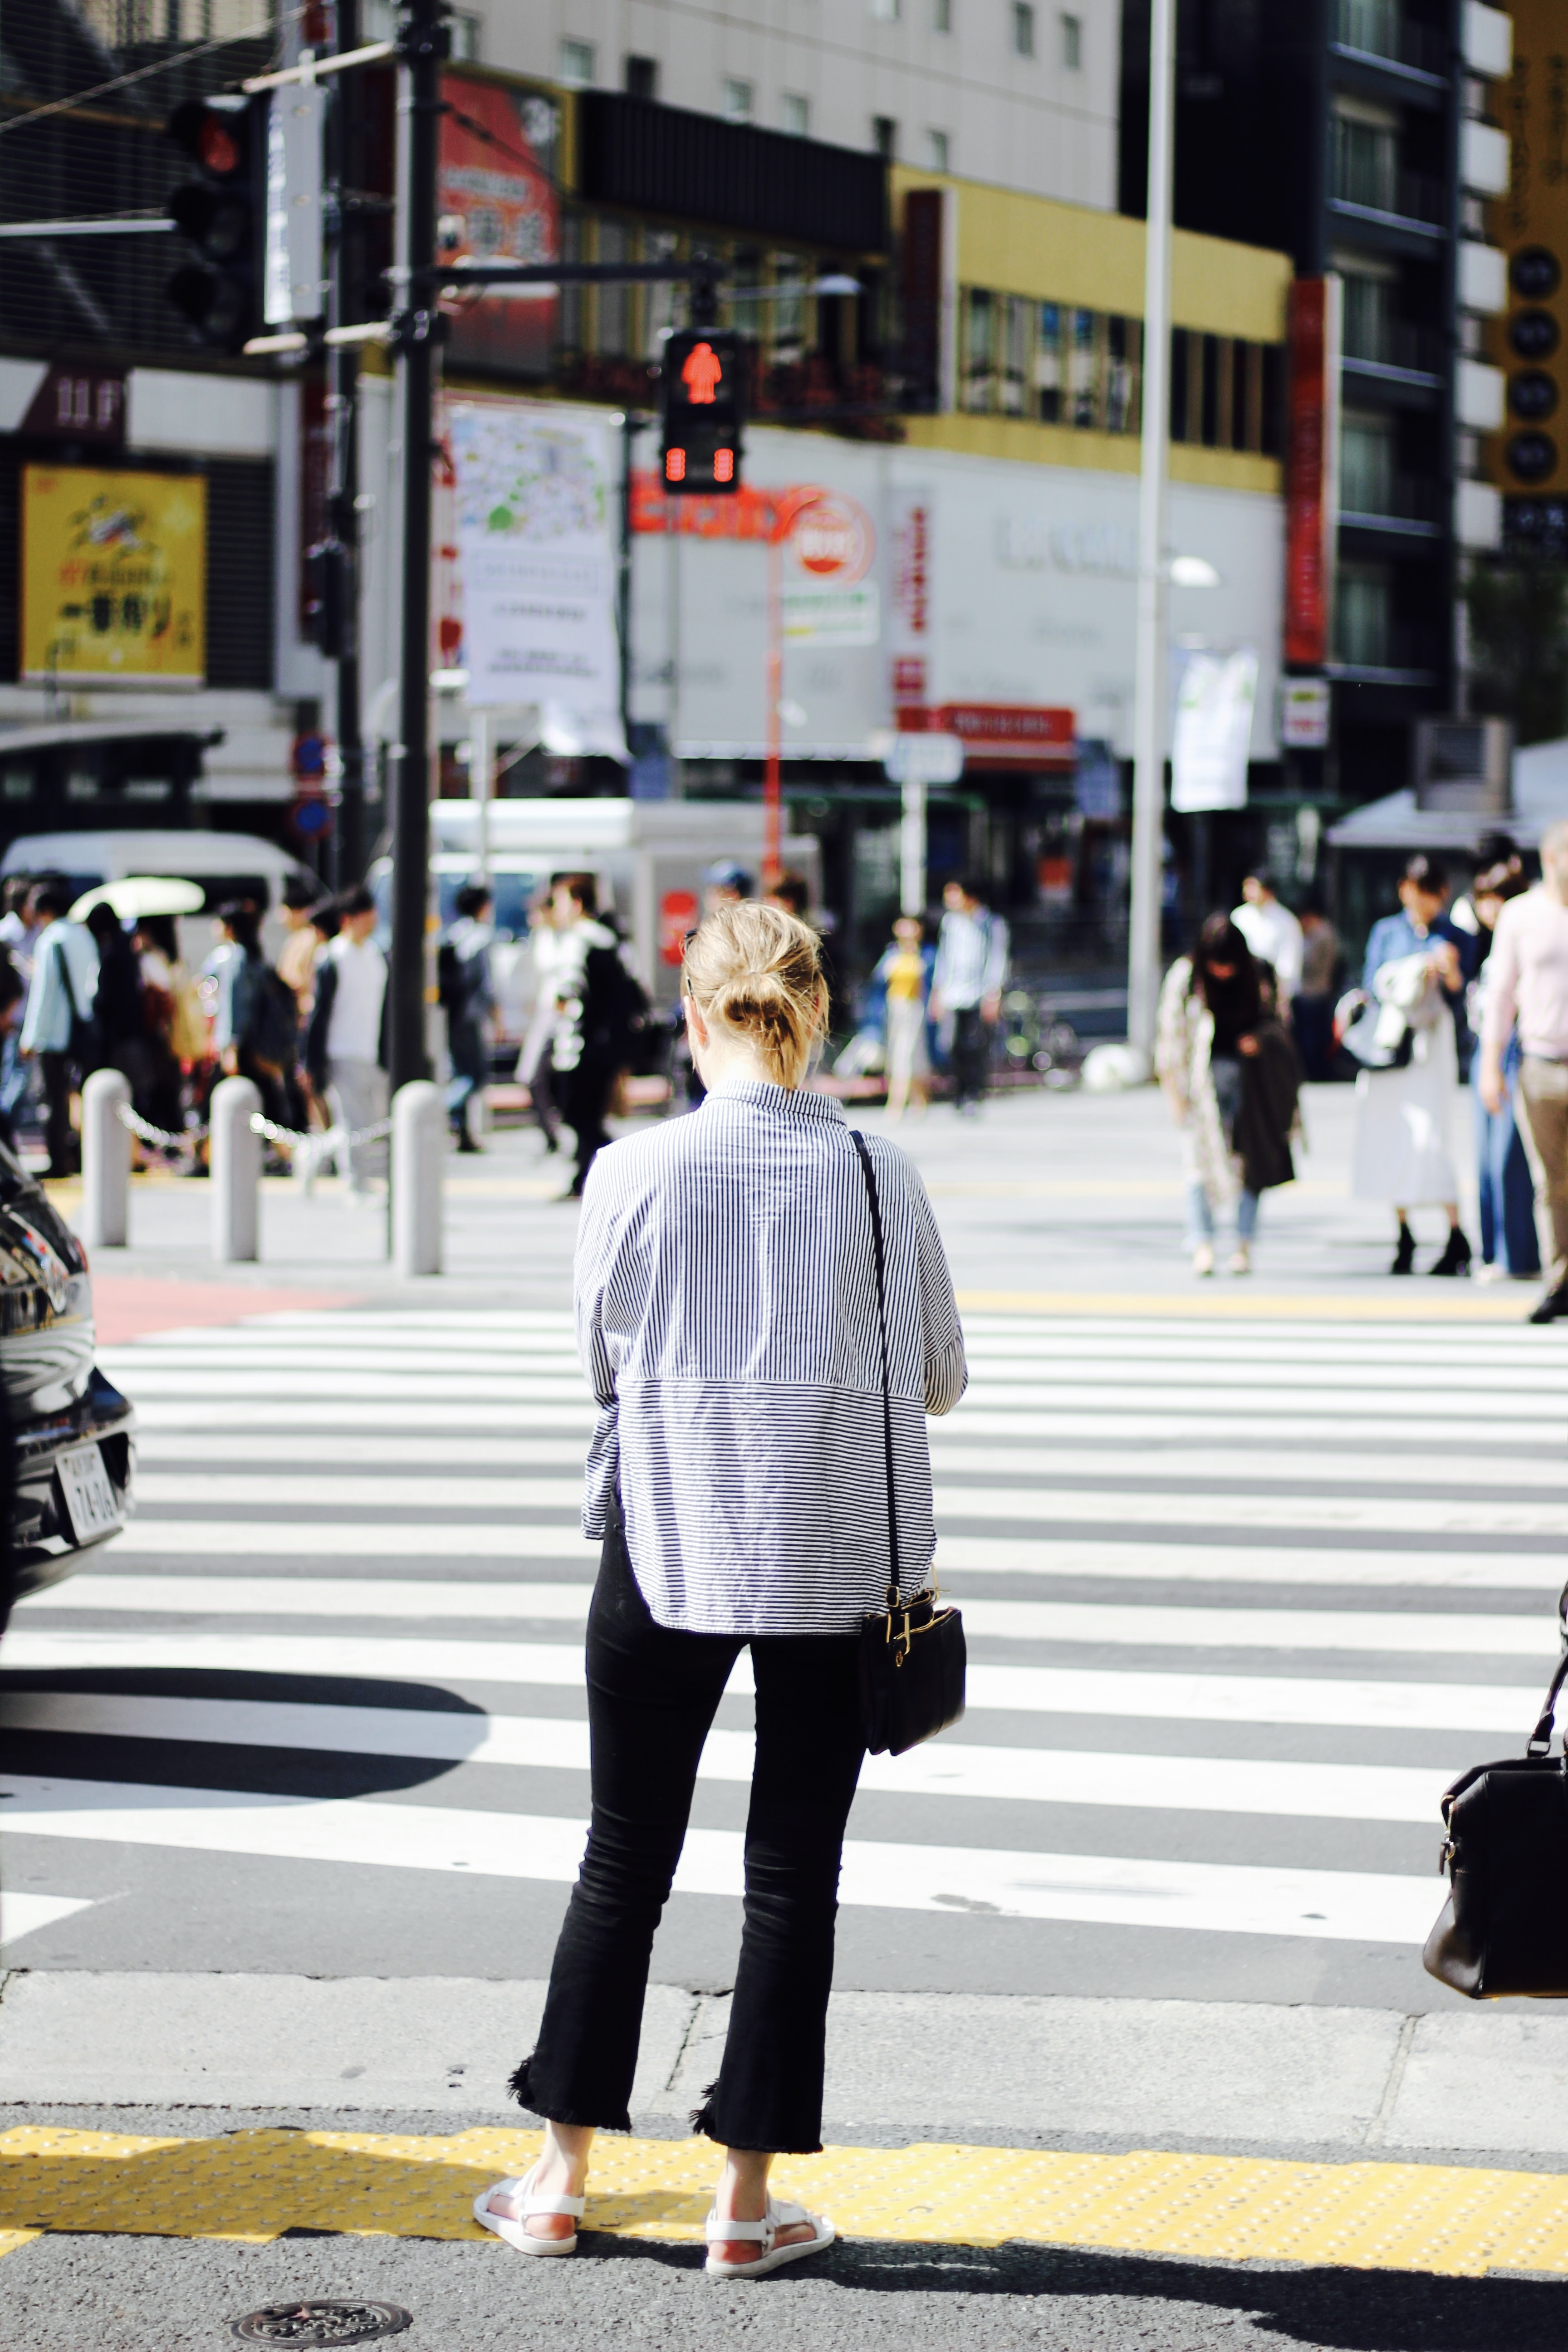 A woman is waiting at the crosswalk for the lights to turn green in Shibuya.